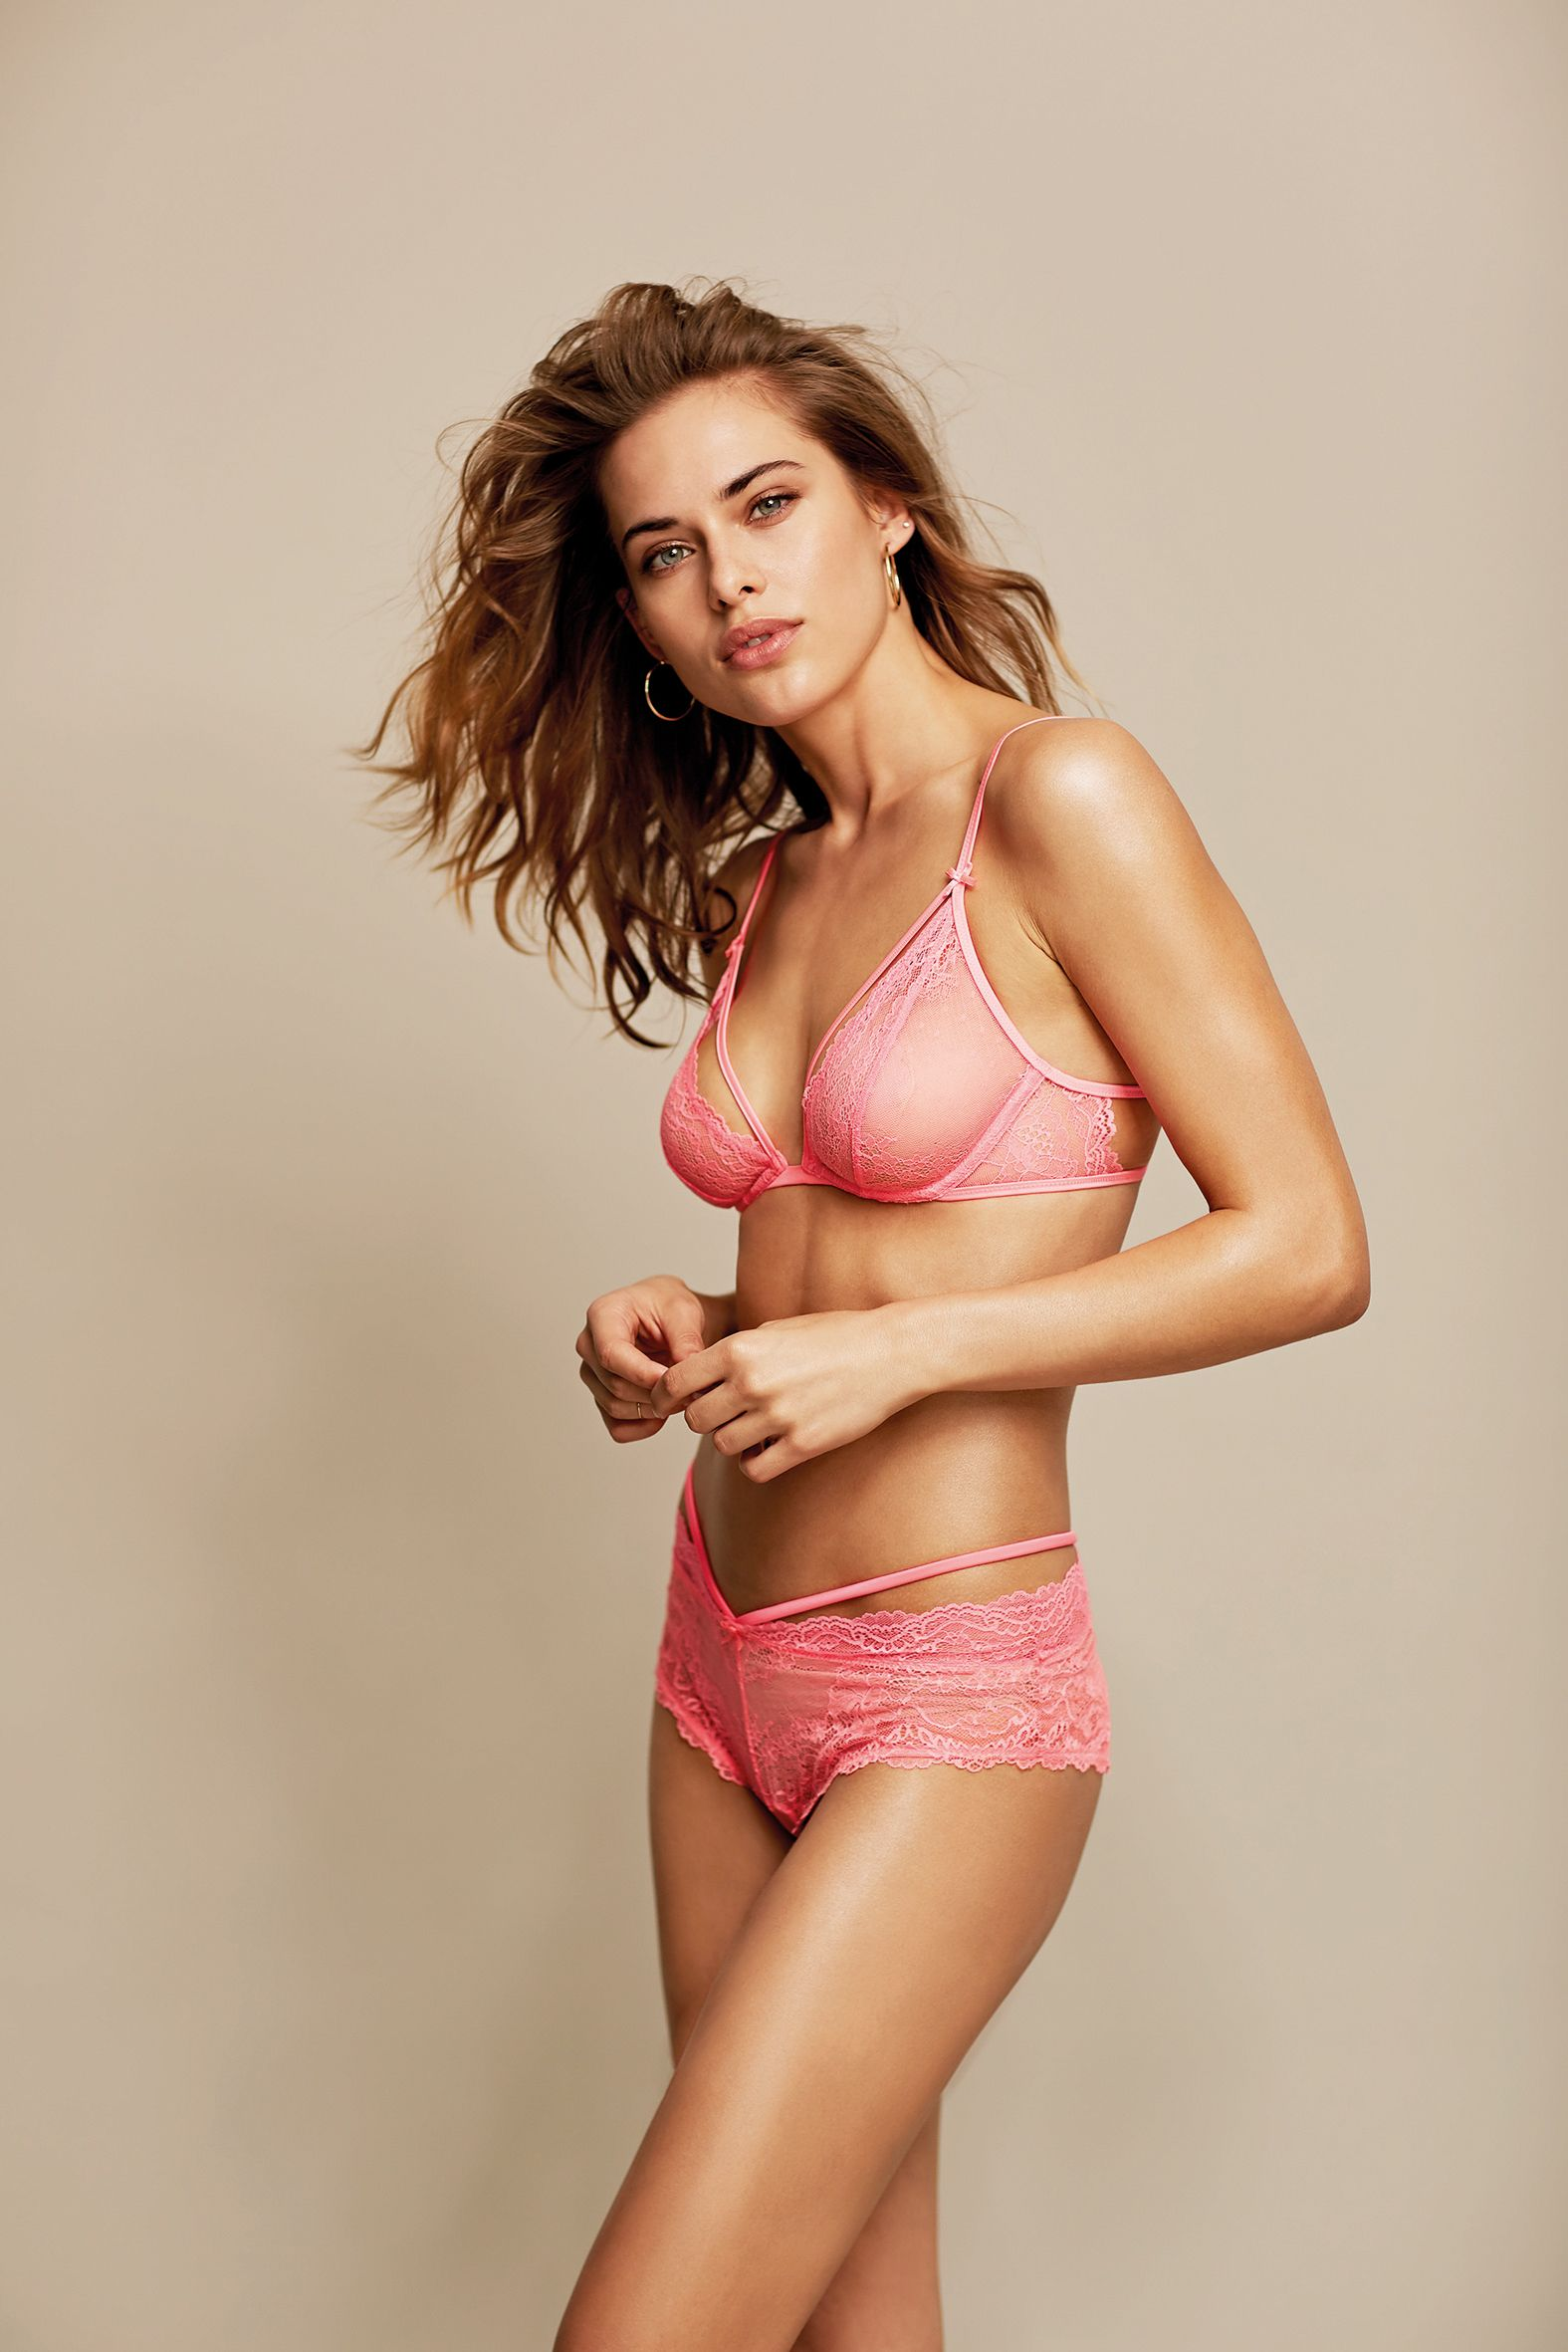 New Spring 15 collection #womensecret #Spring #lingerie #loungewear #sleepwear #pink #straps